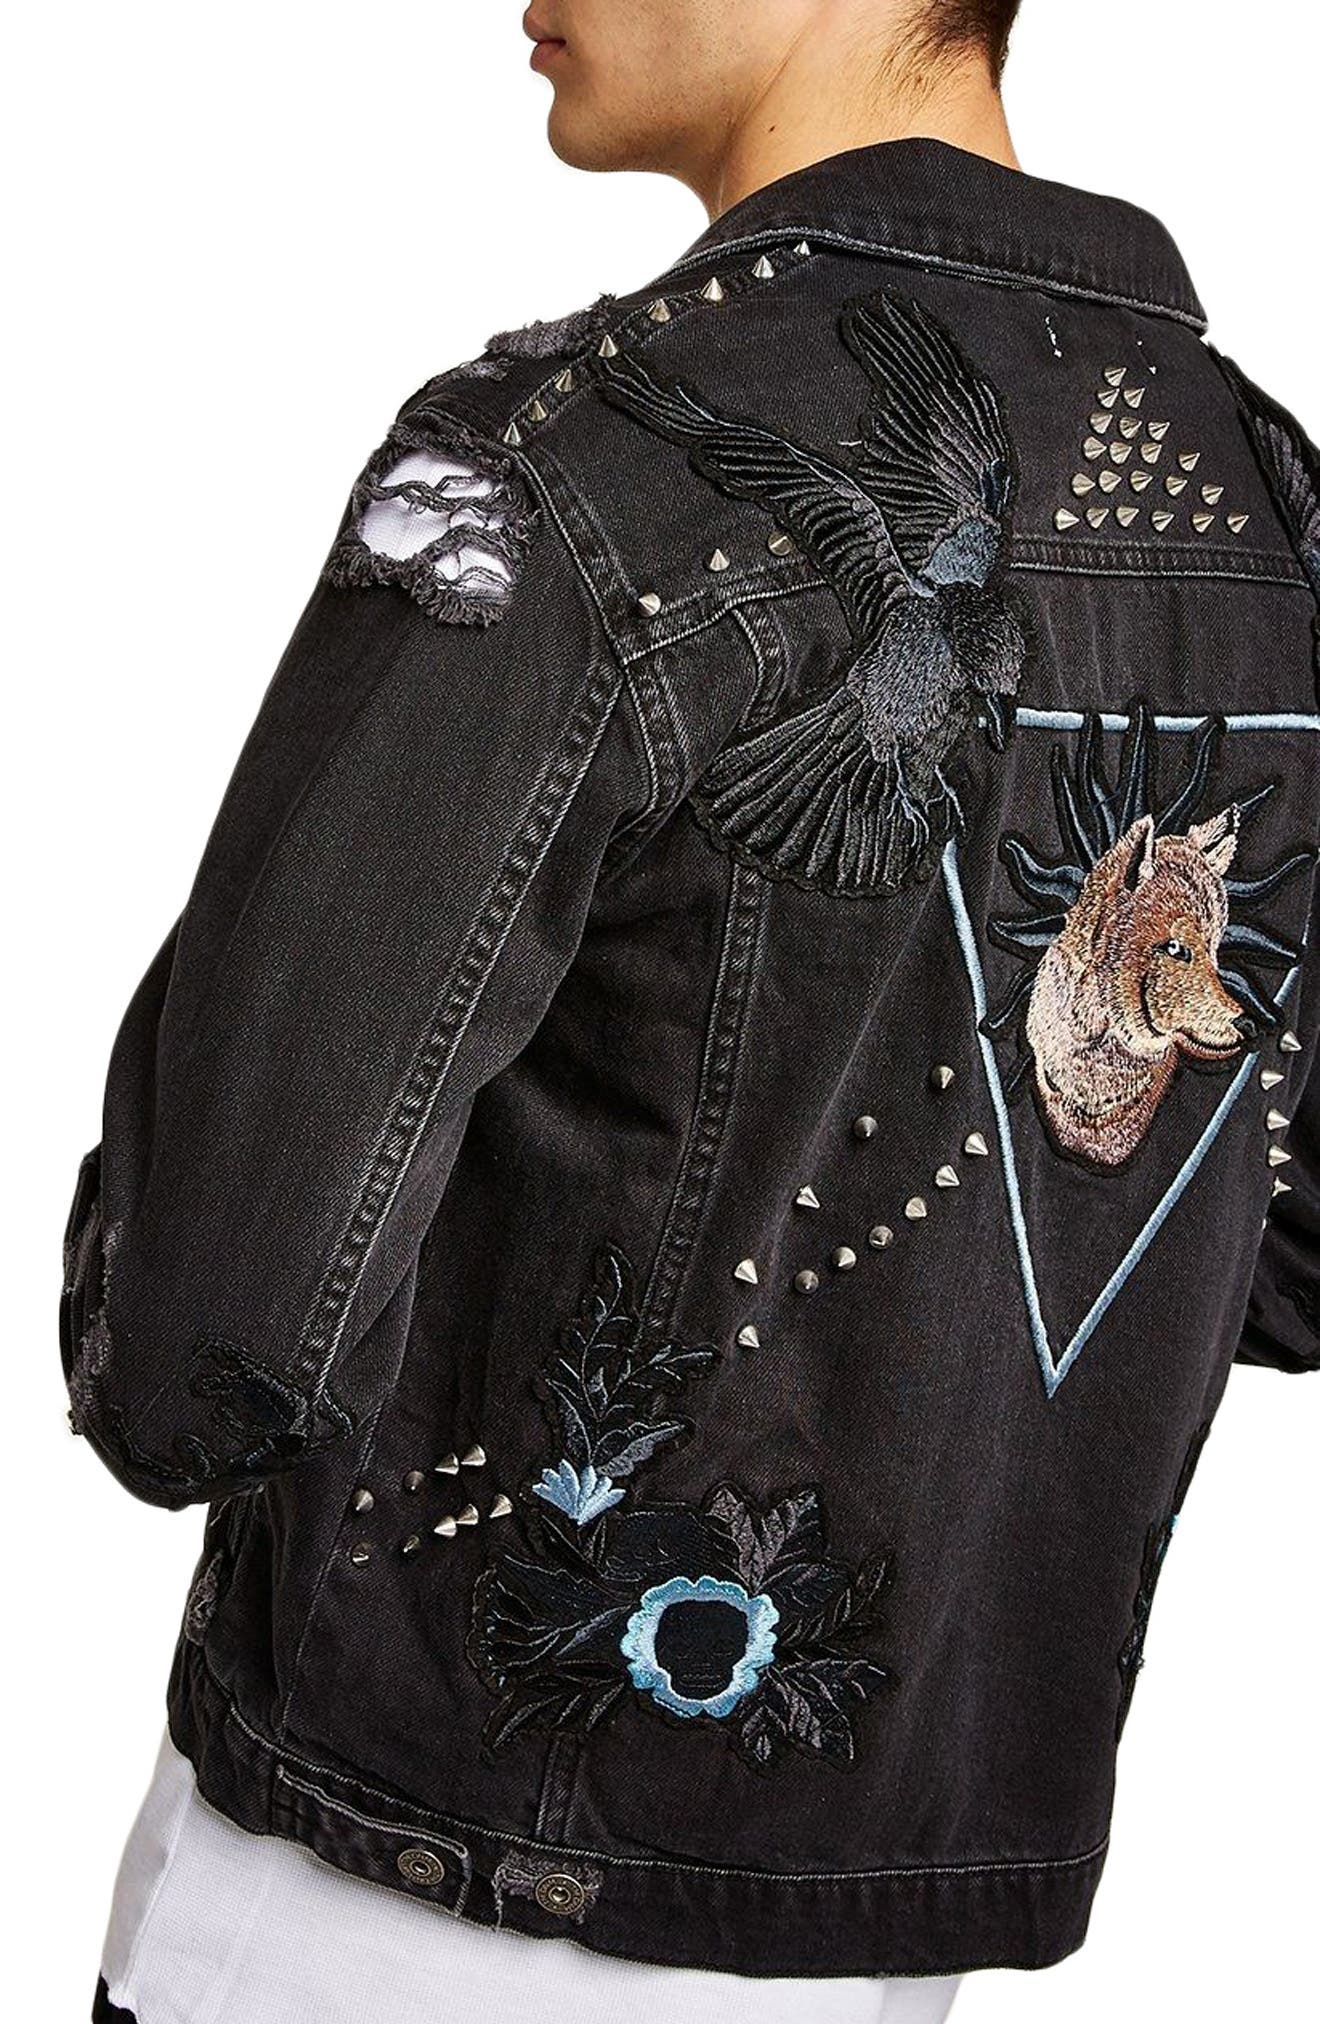 Sleepy Hollow Slim Fit Denim Jacket with Patches,                             Alternate thumbnail 2, color,                             001